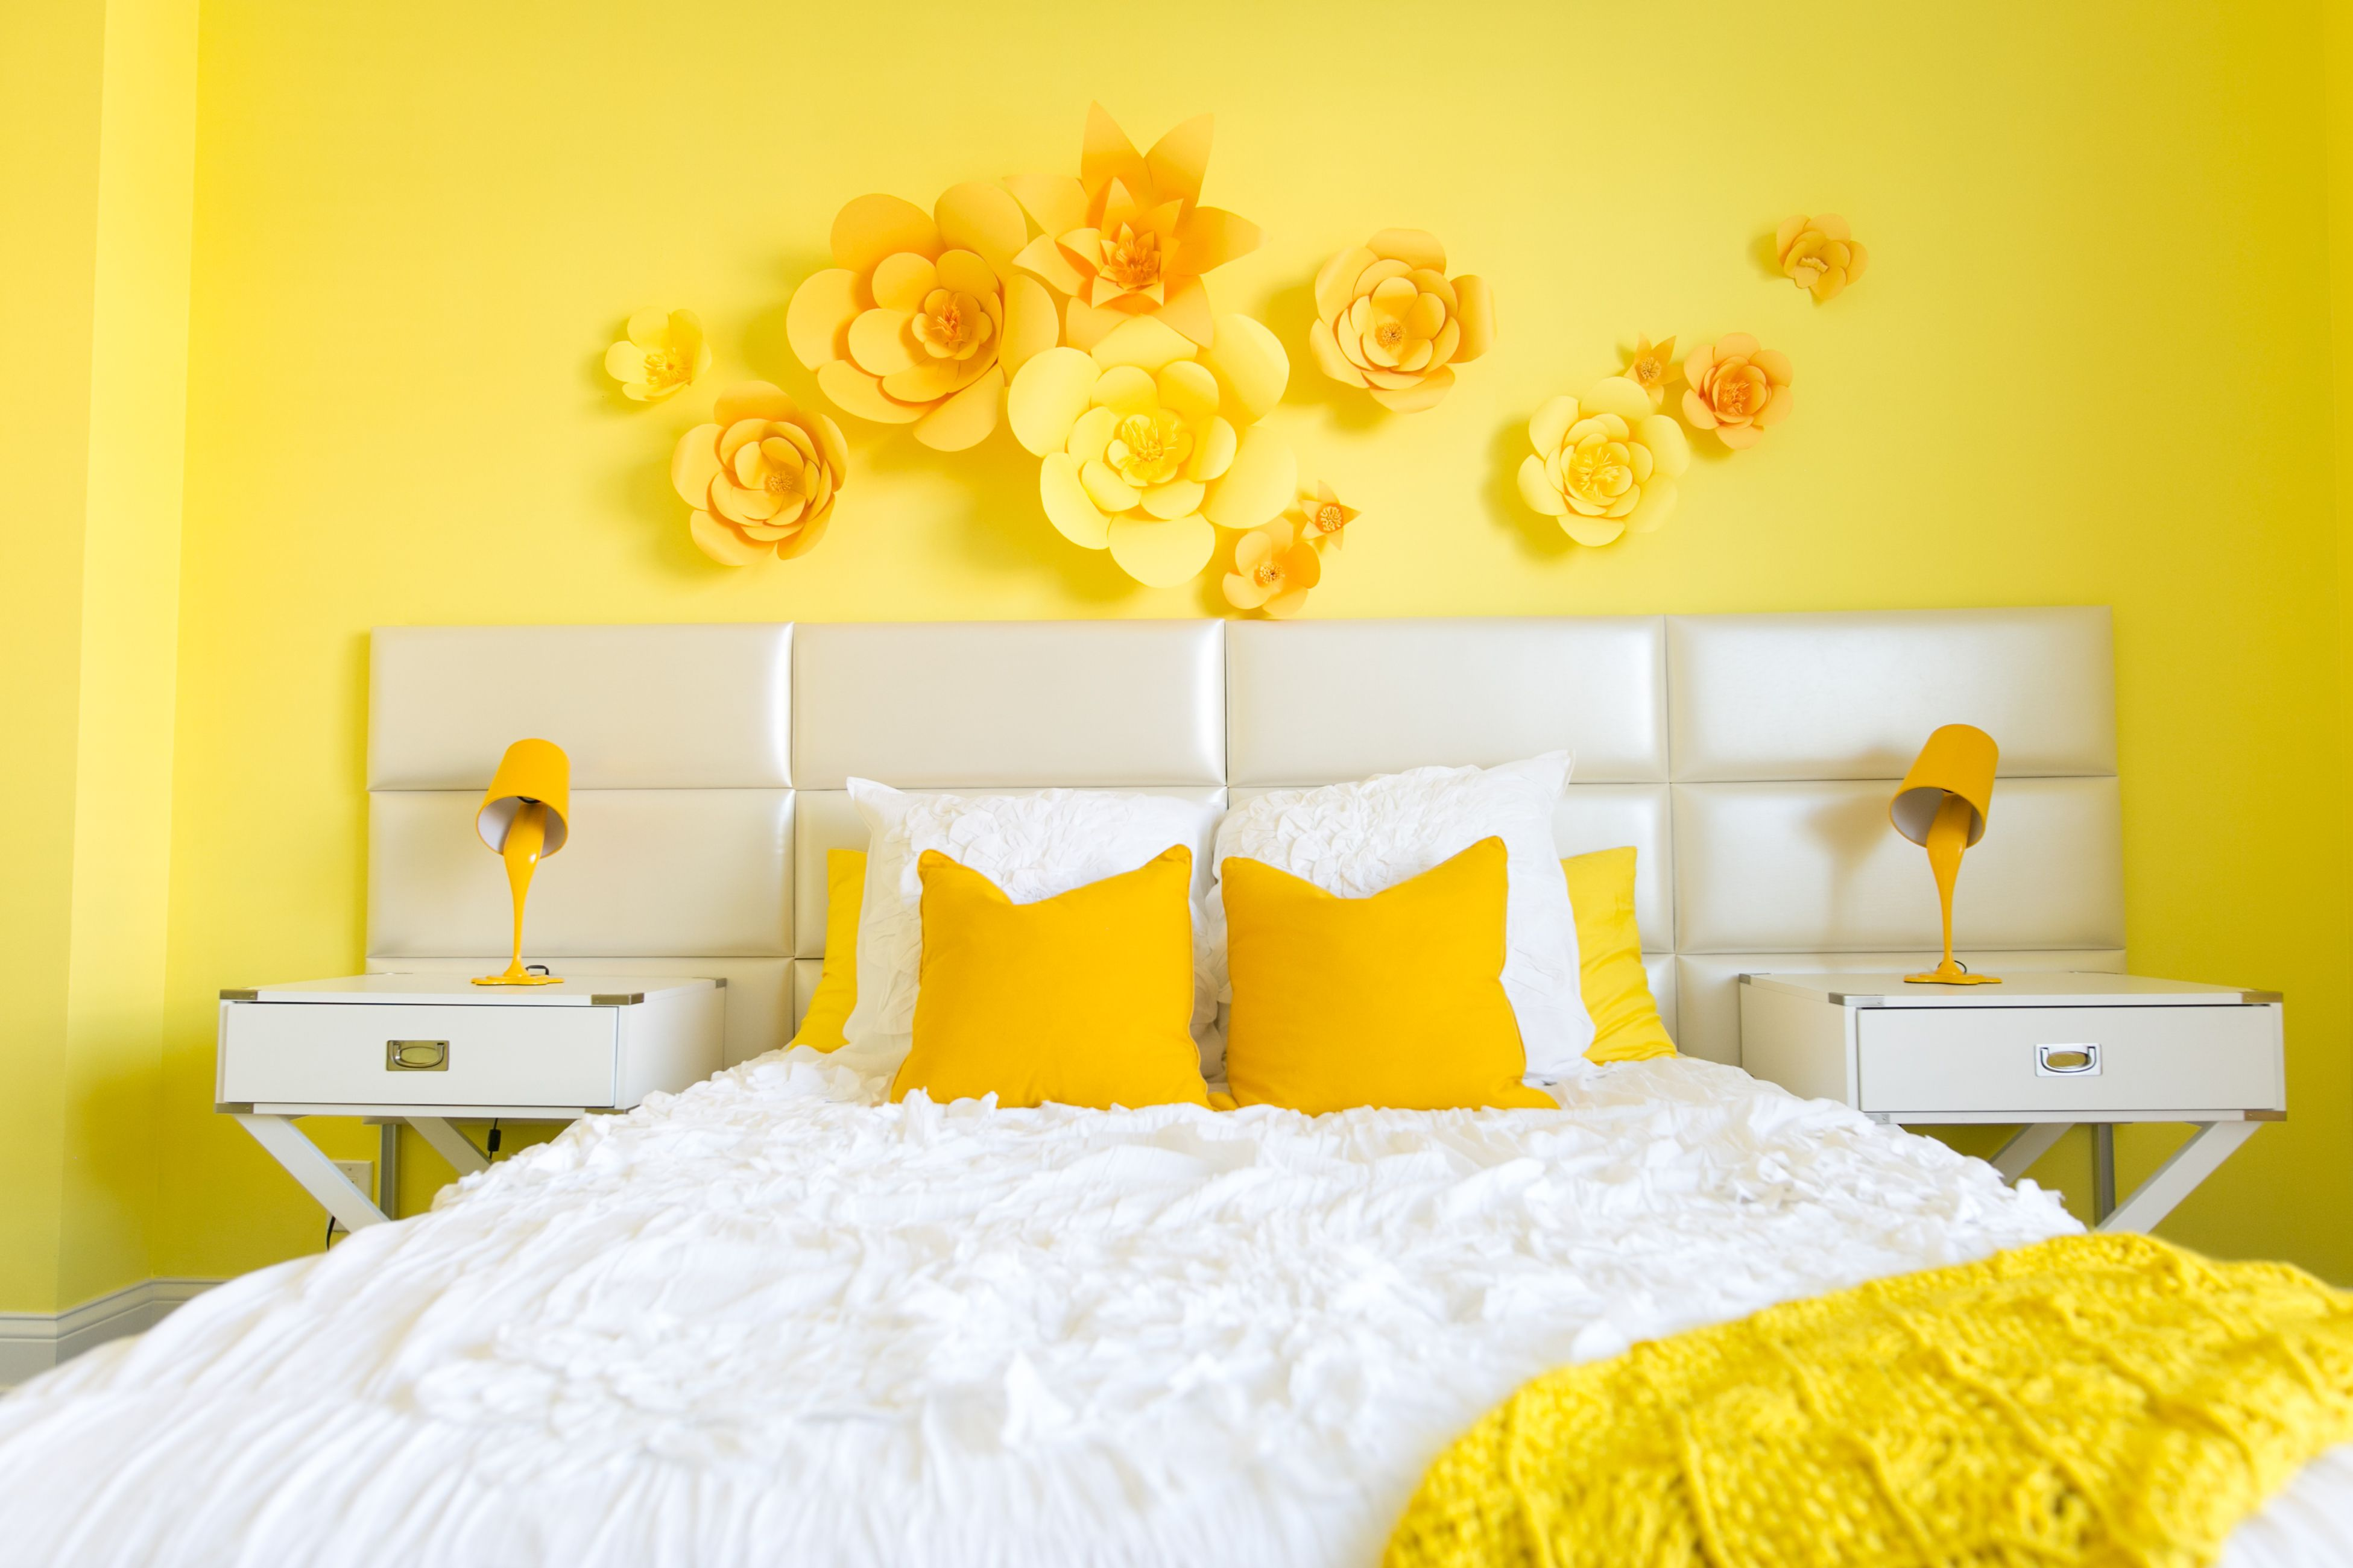 Image Result For Adelaine Morin Bedroom Emmas Room